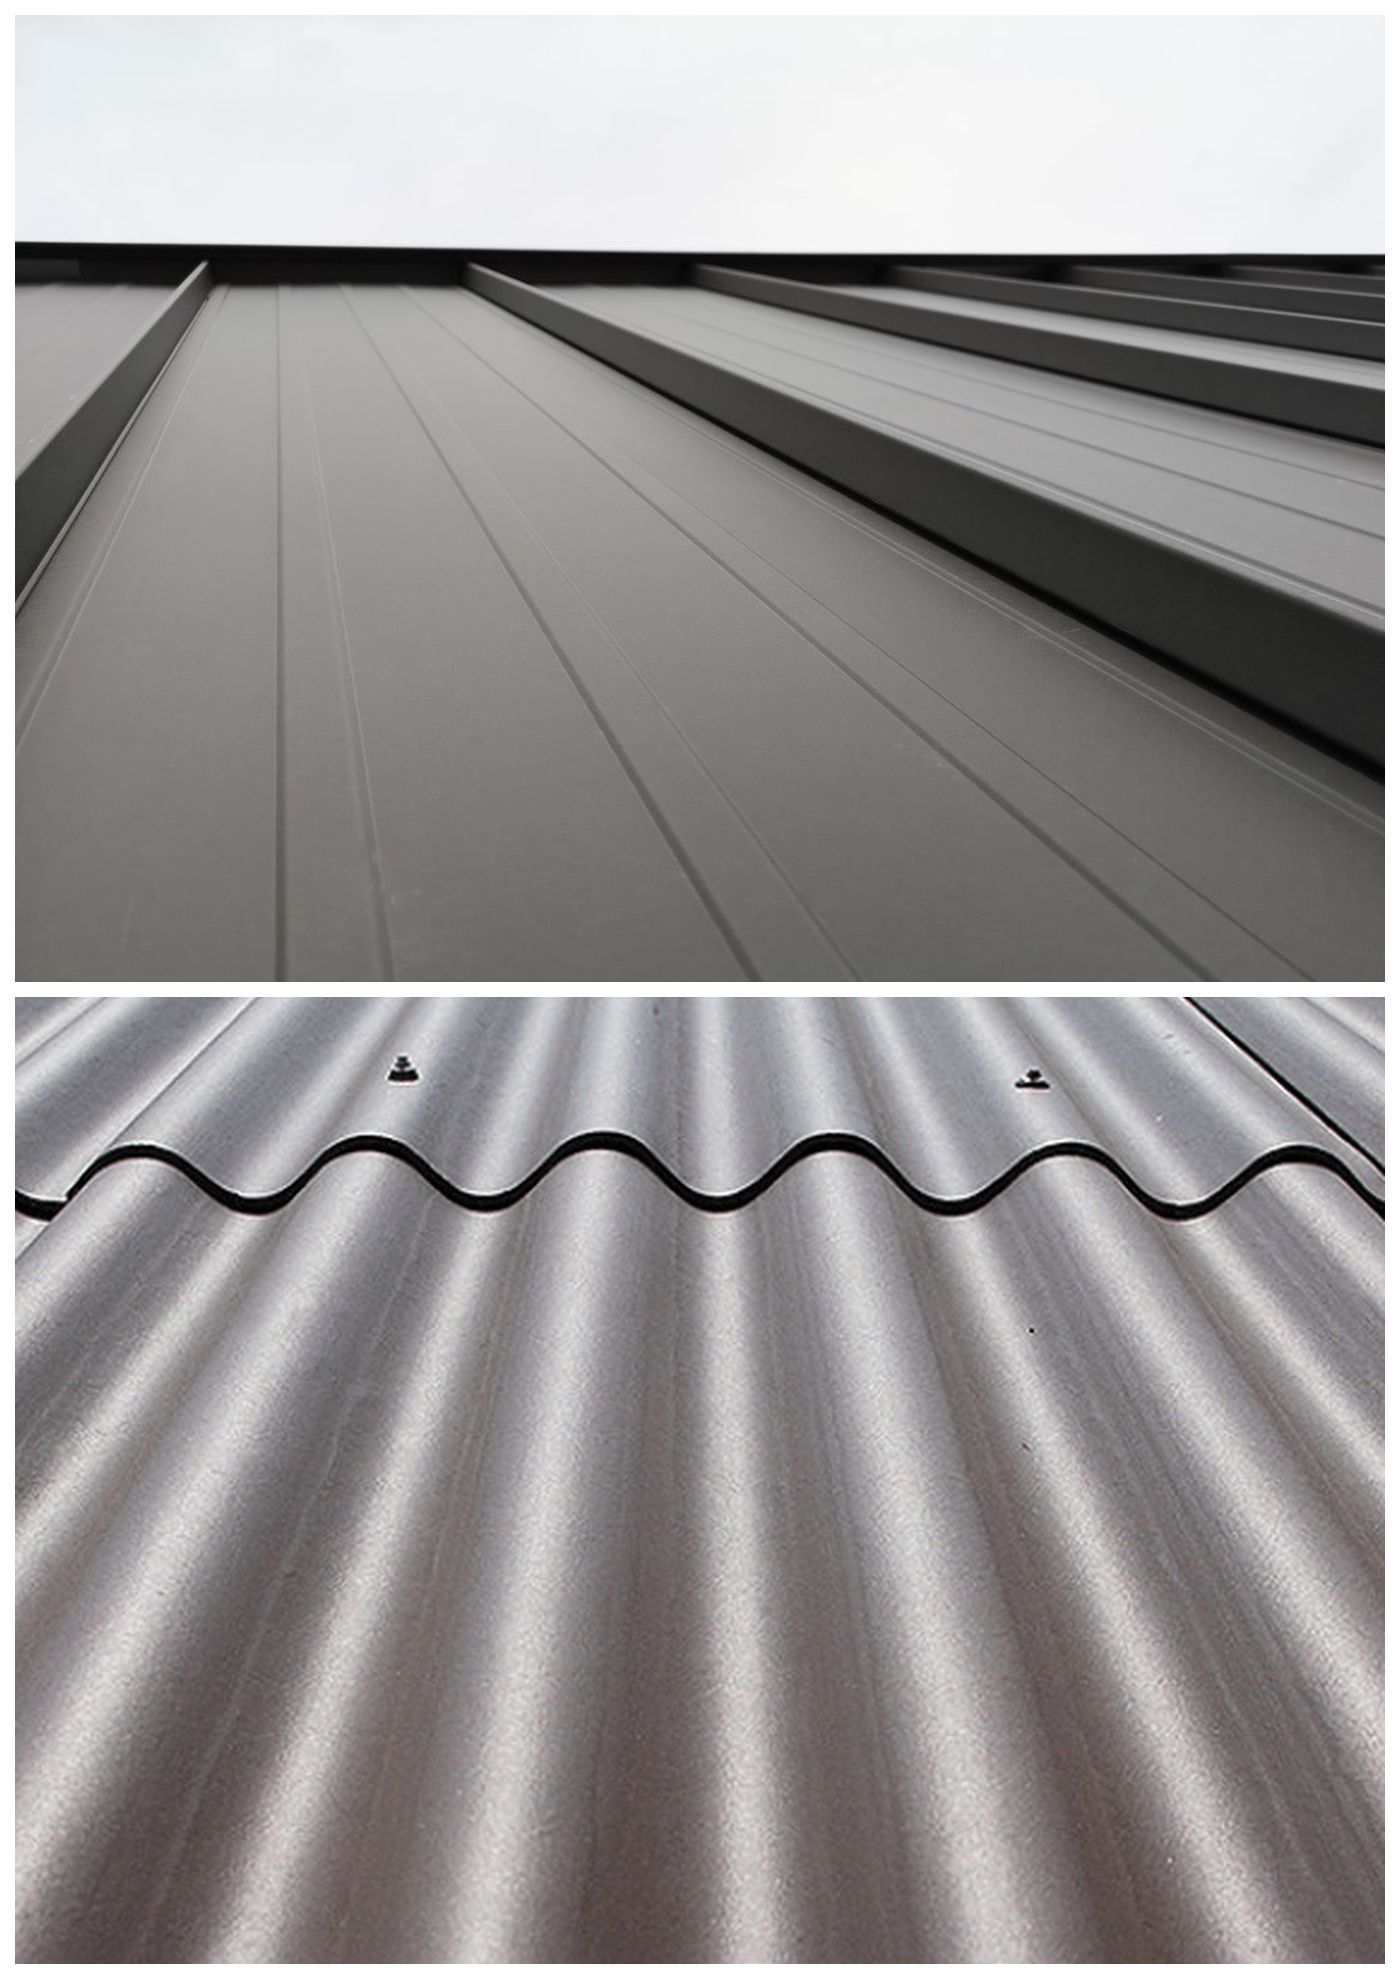 Standing seam vs corrugated metal roof In this article, we